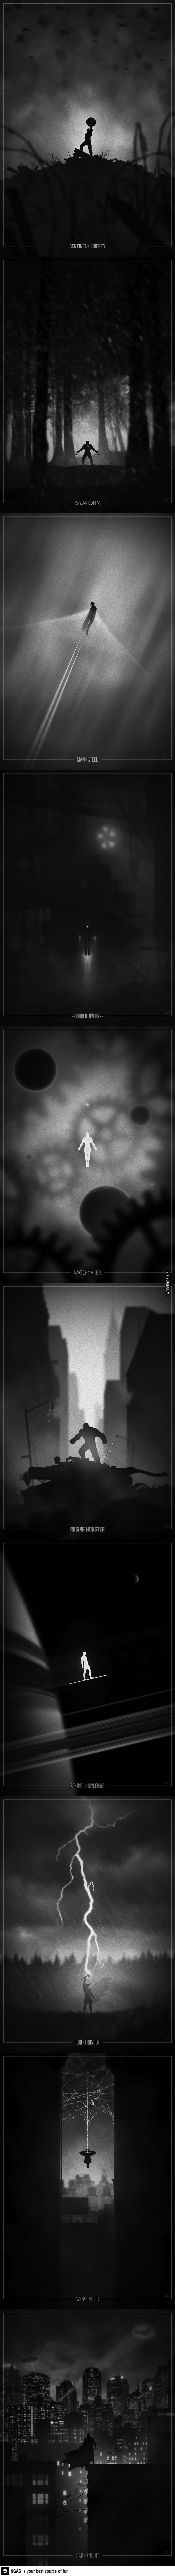 Beautiful artwork. Black and white, silhouette. DC and Marvel Superheroes.